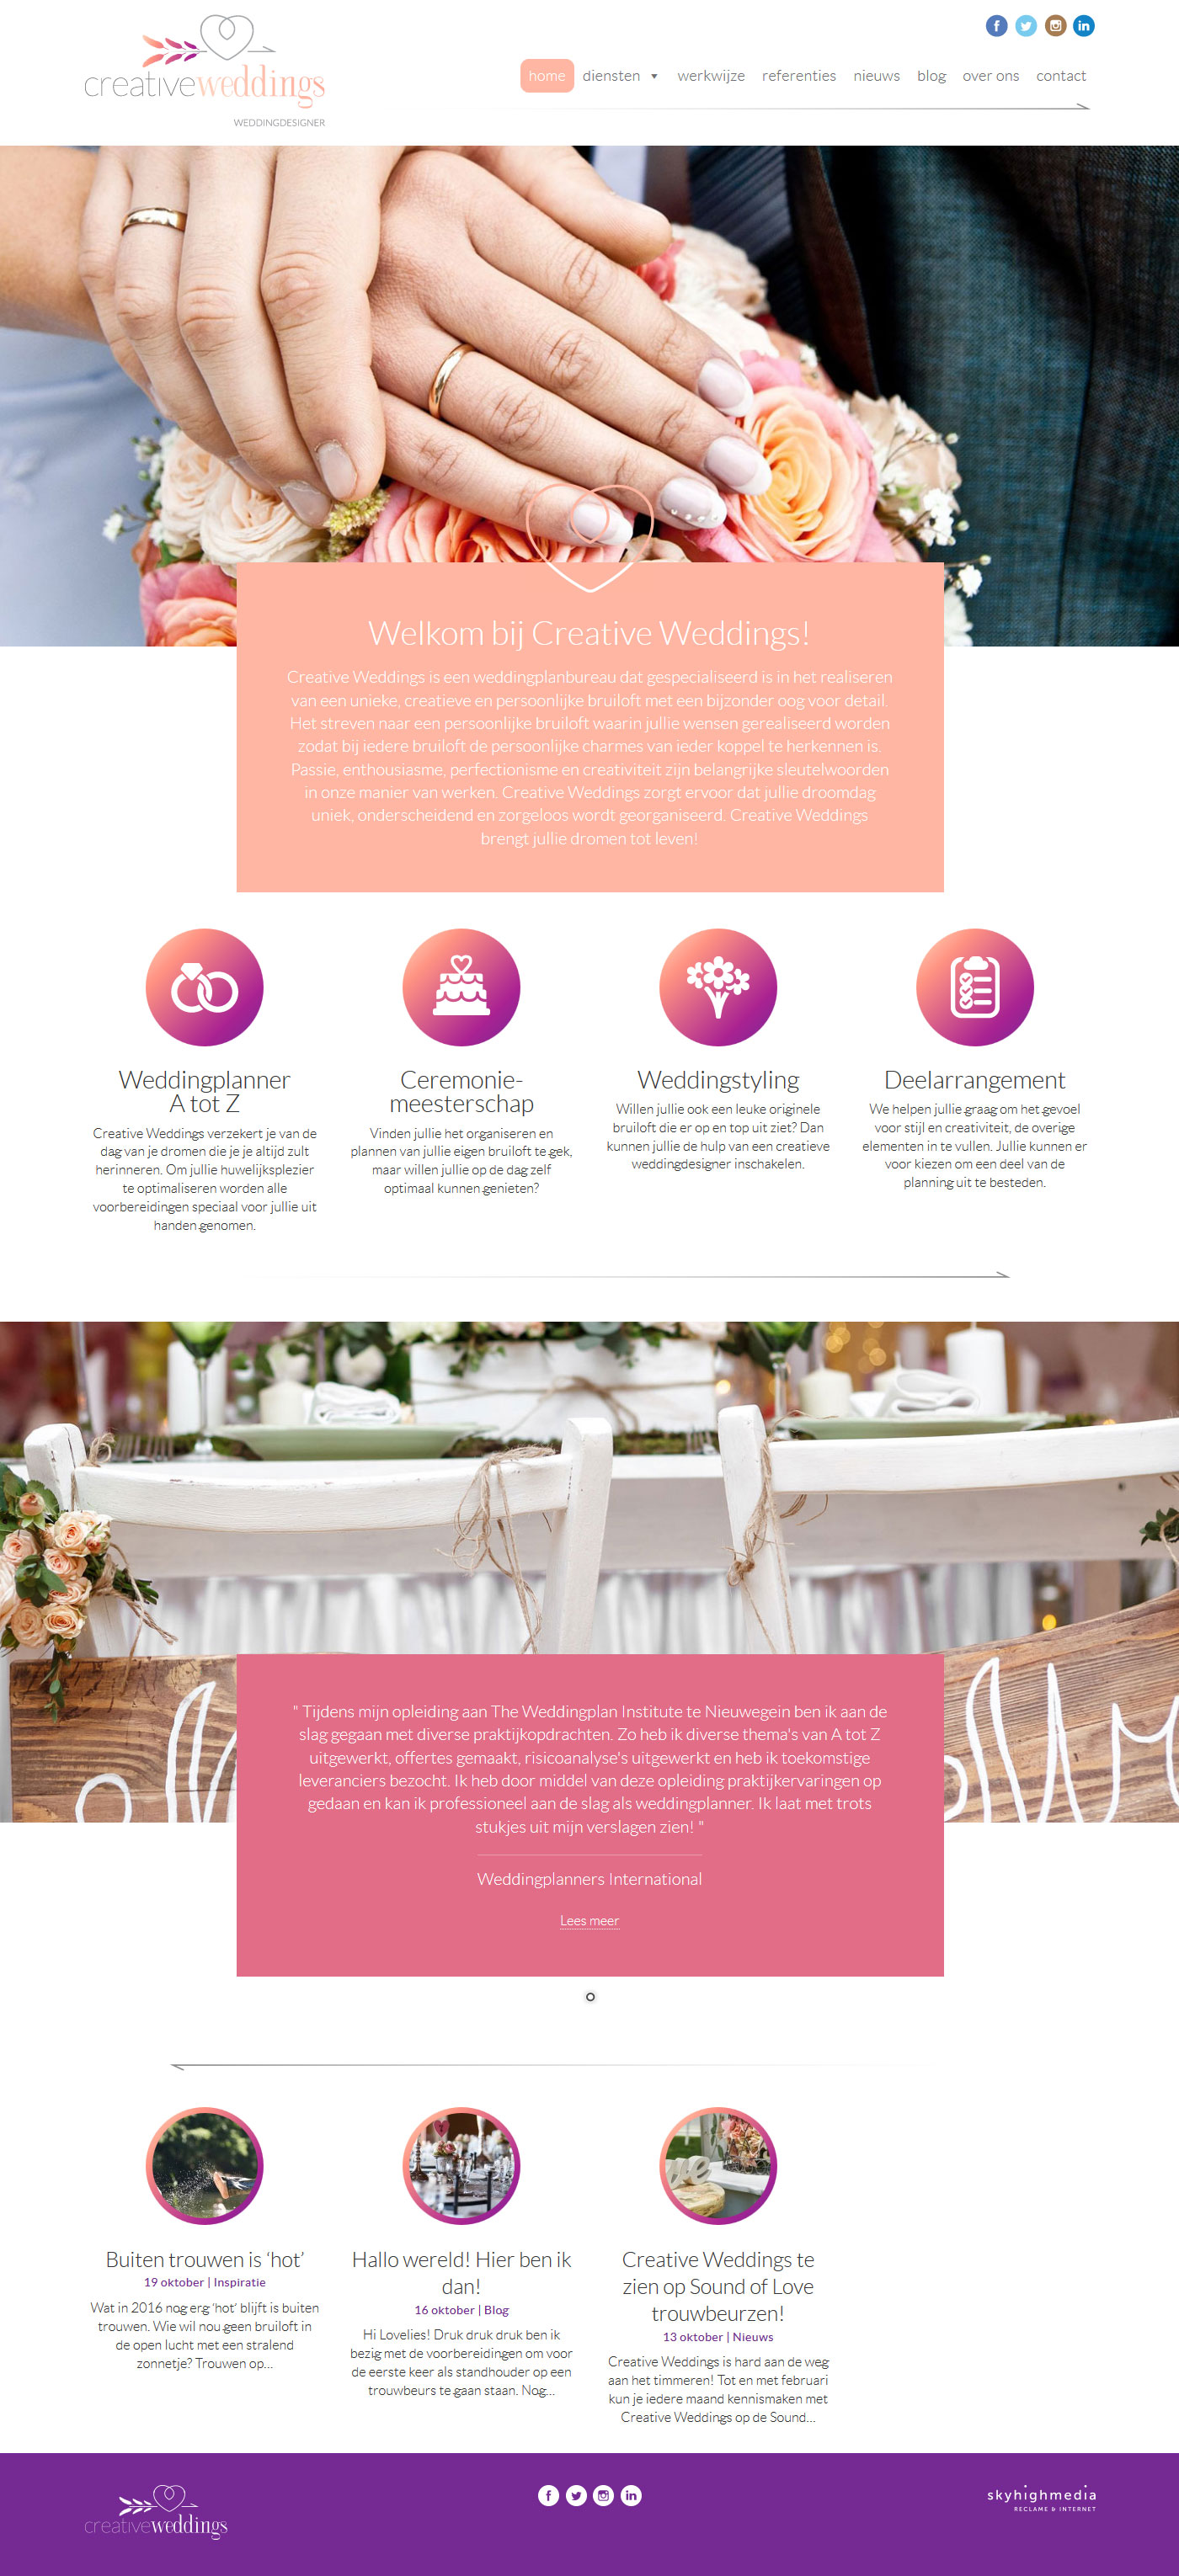 creativeweddings_website1